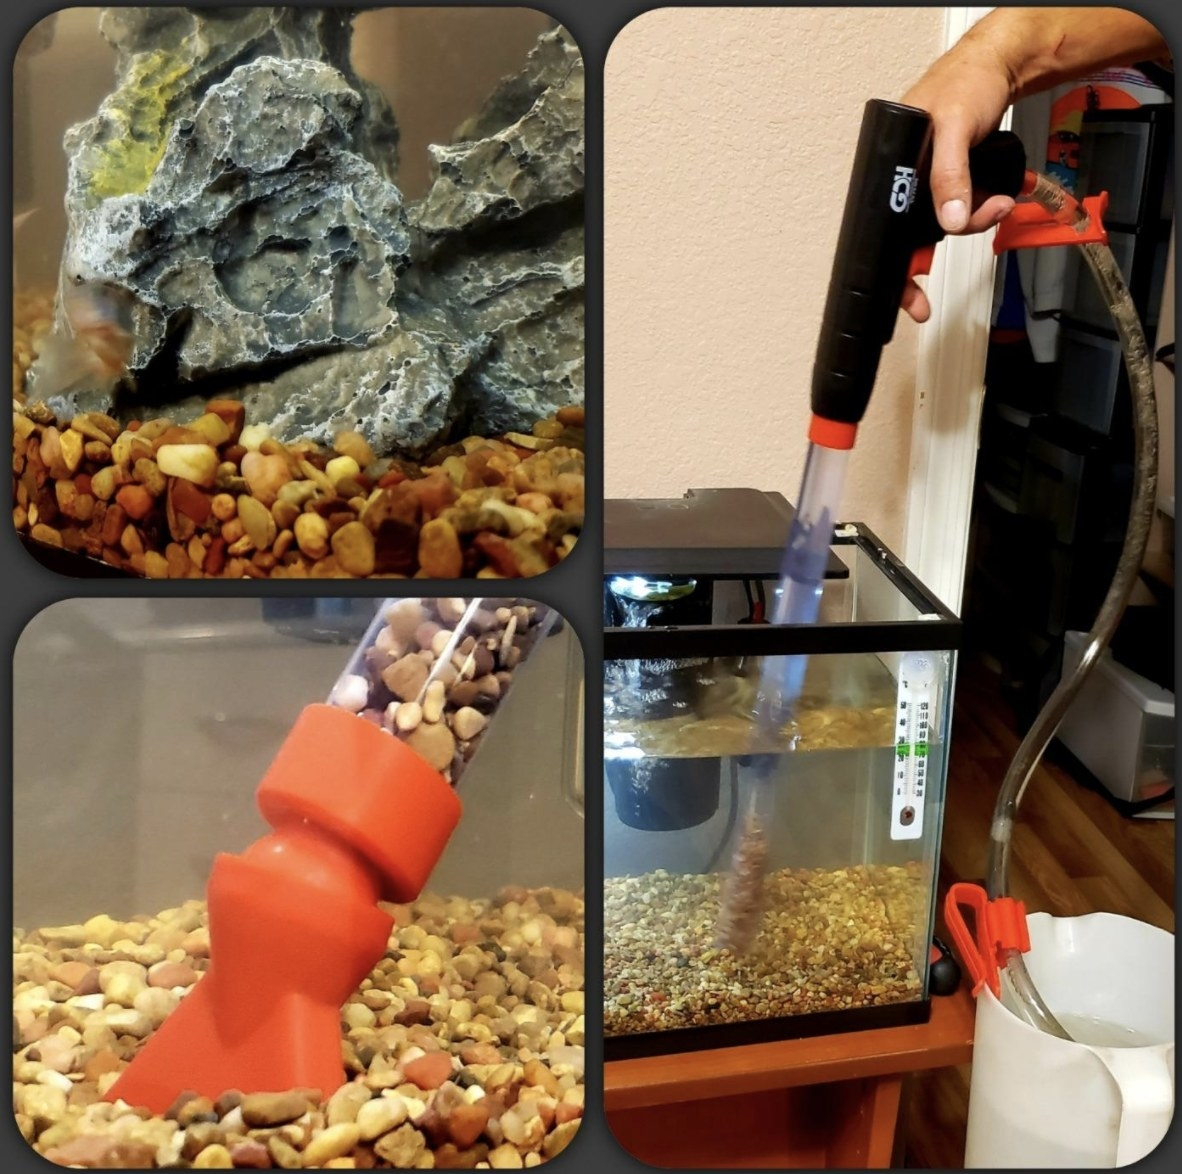 Person is vacuuming gravel in a fish tank